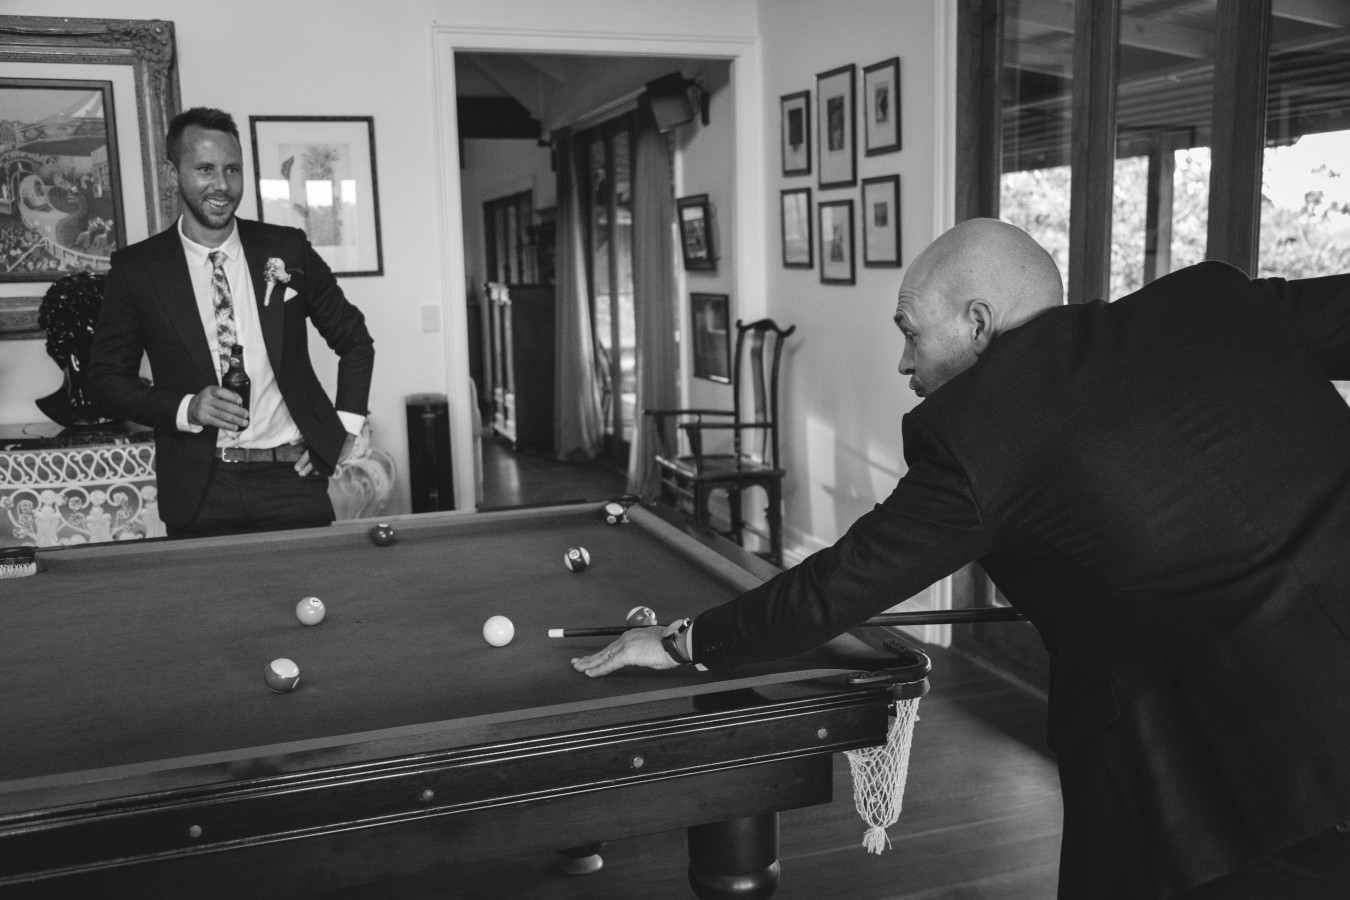 Al playing pool b+w